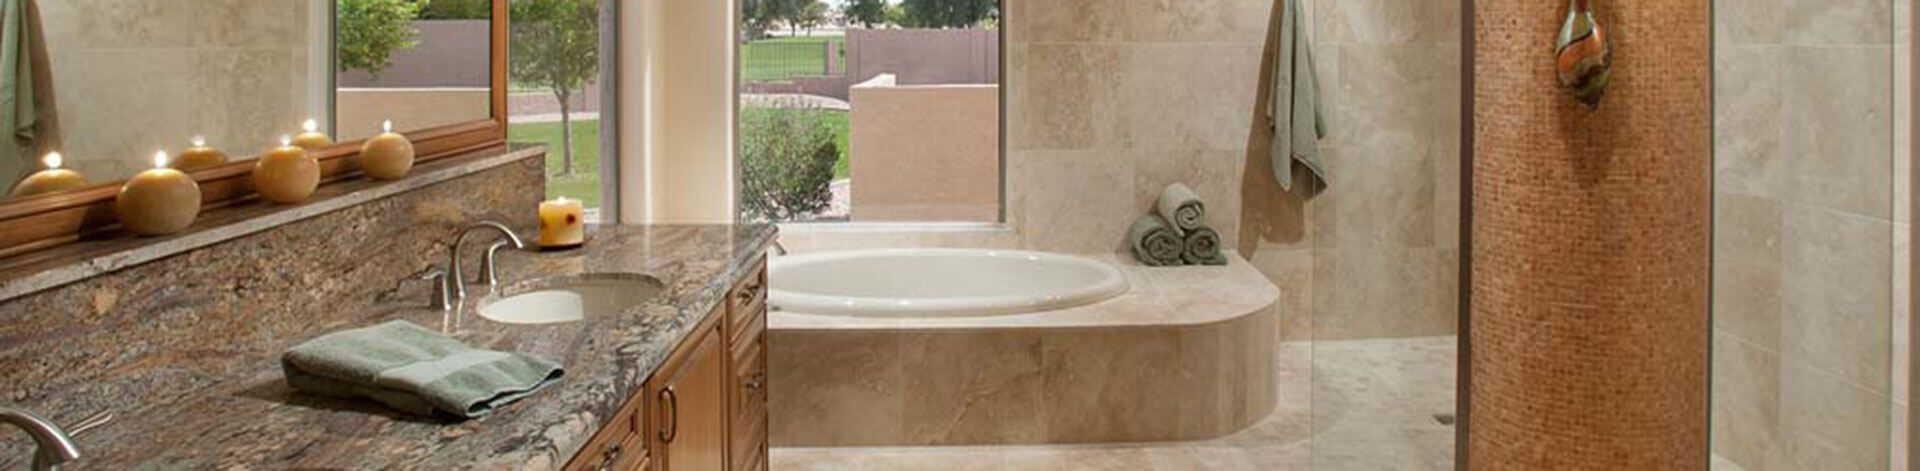 Phoenix Bathroom Remodel Extraordinary Bathroom Remodeling In Phoenix & Scottsdale  Republic West Remodeling Review